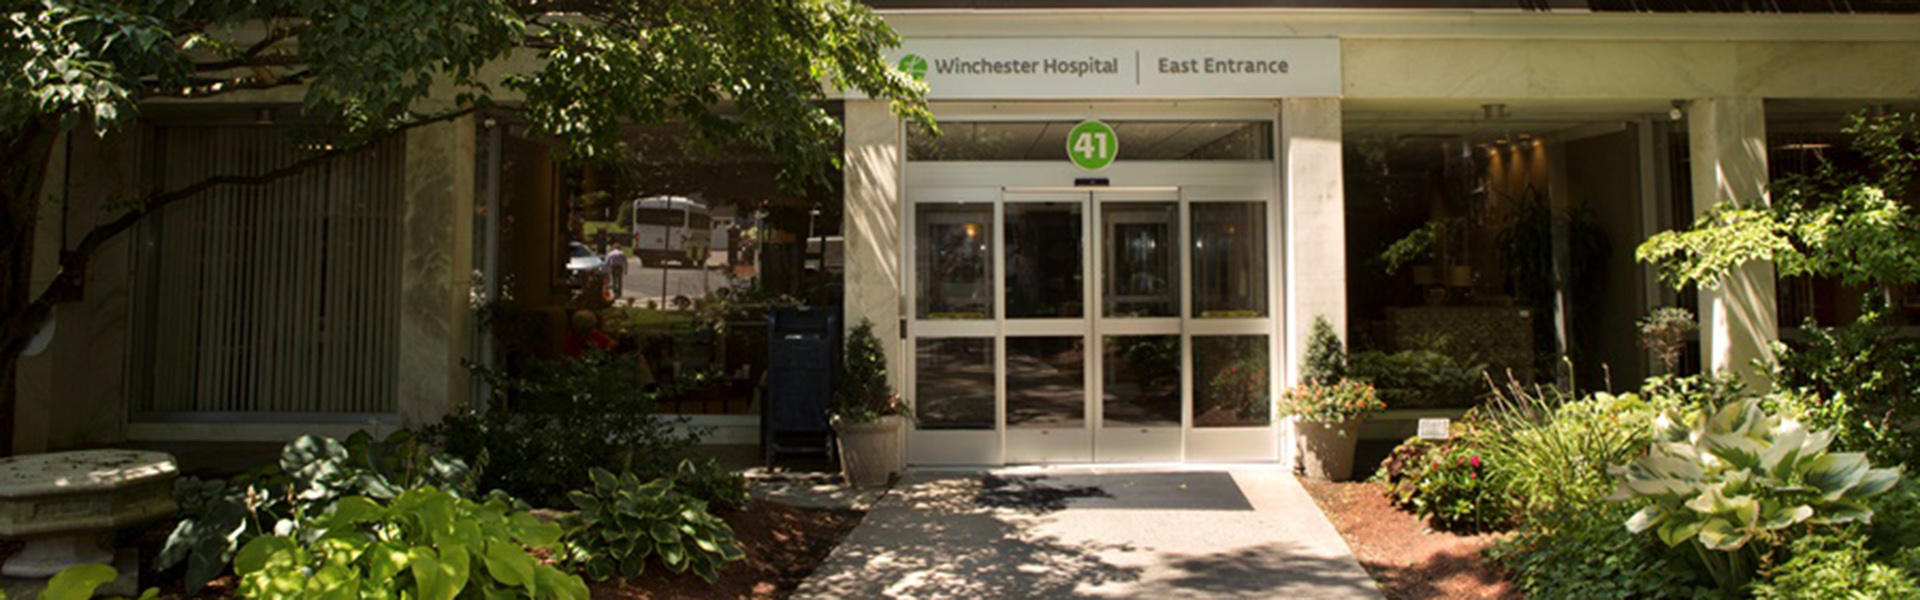 Winchester Hospital East entrance banner photo